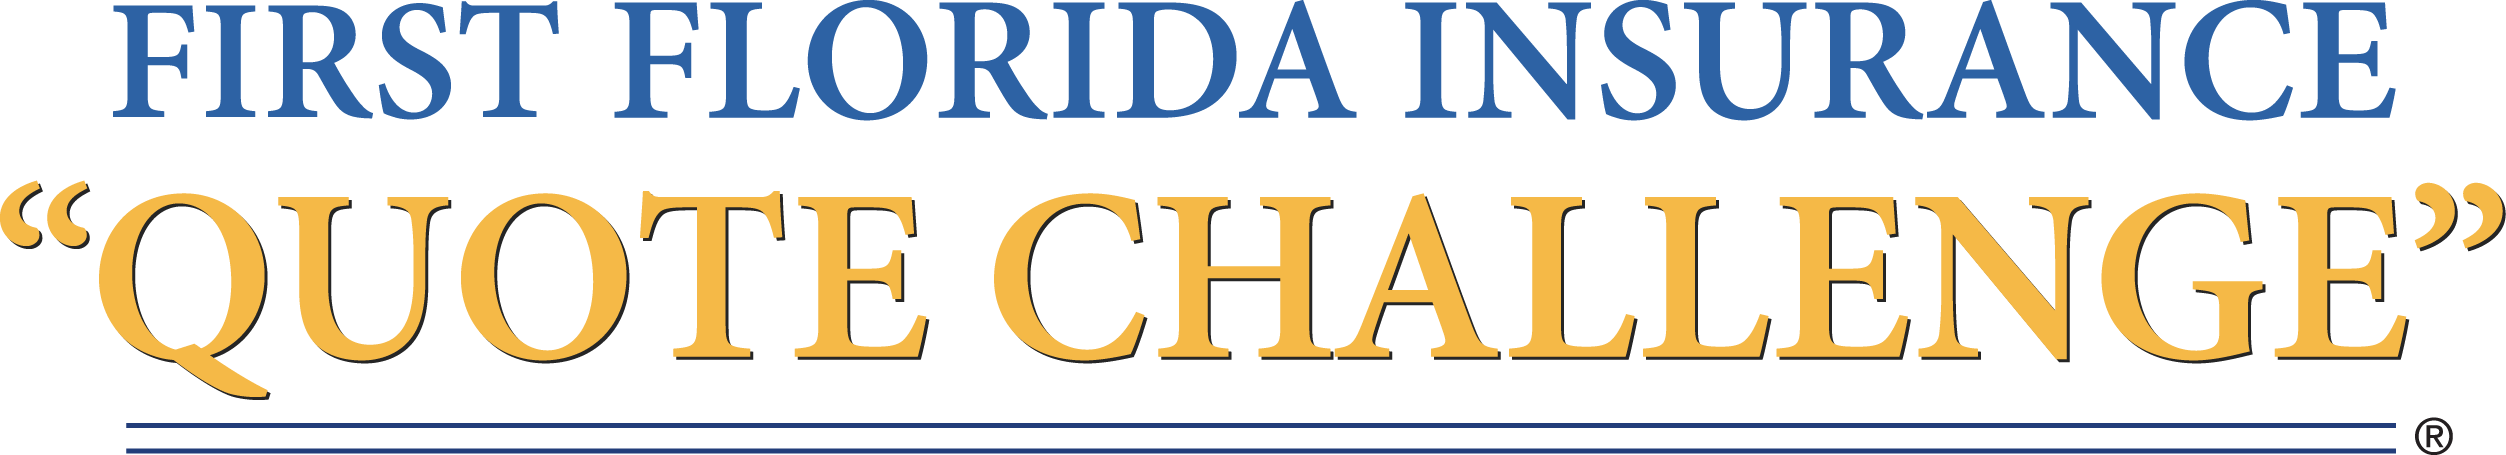 First Florida Insurance Quote-challenge